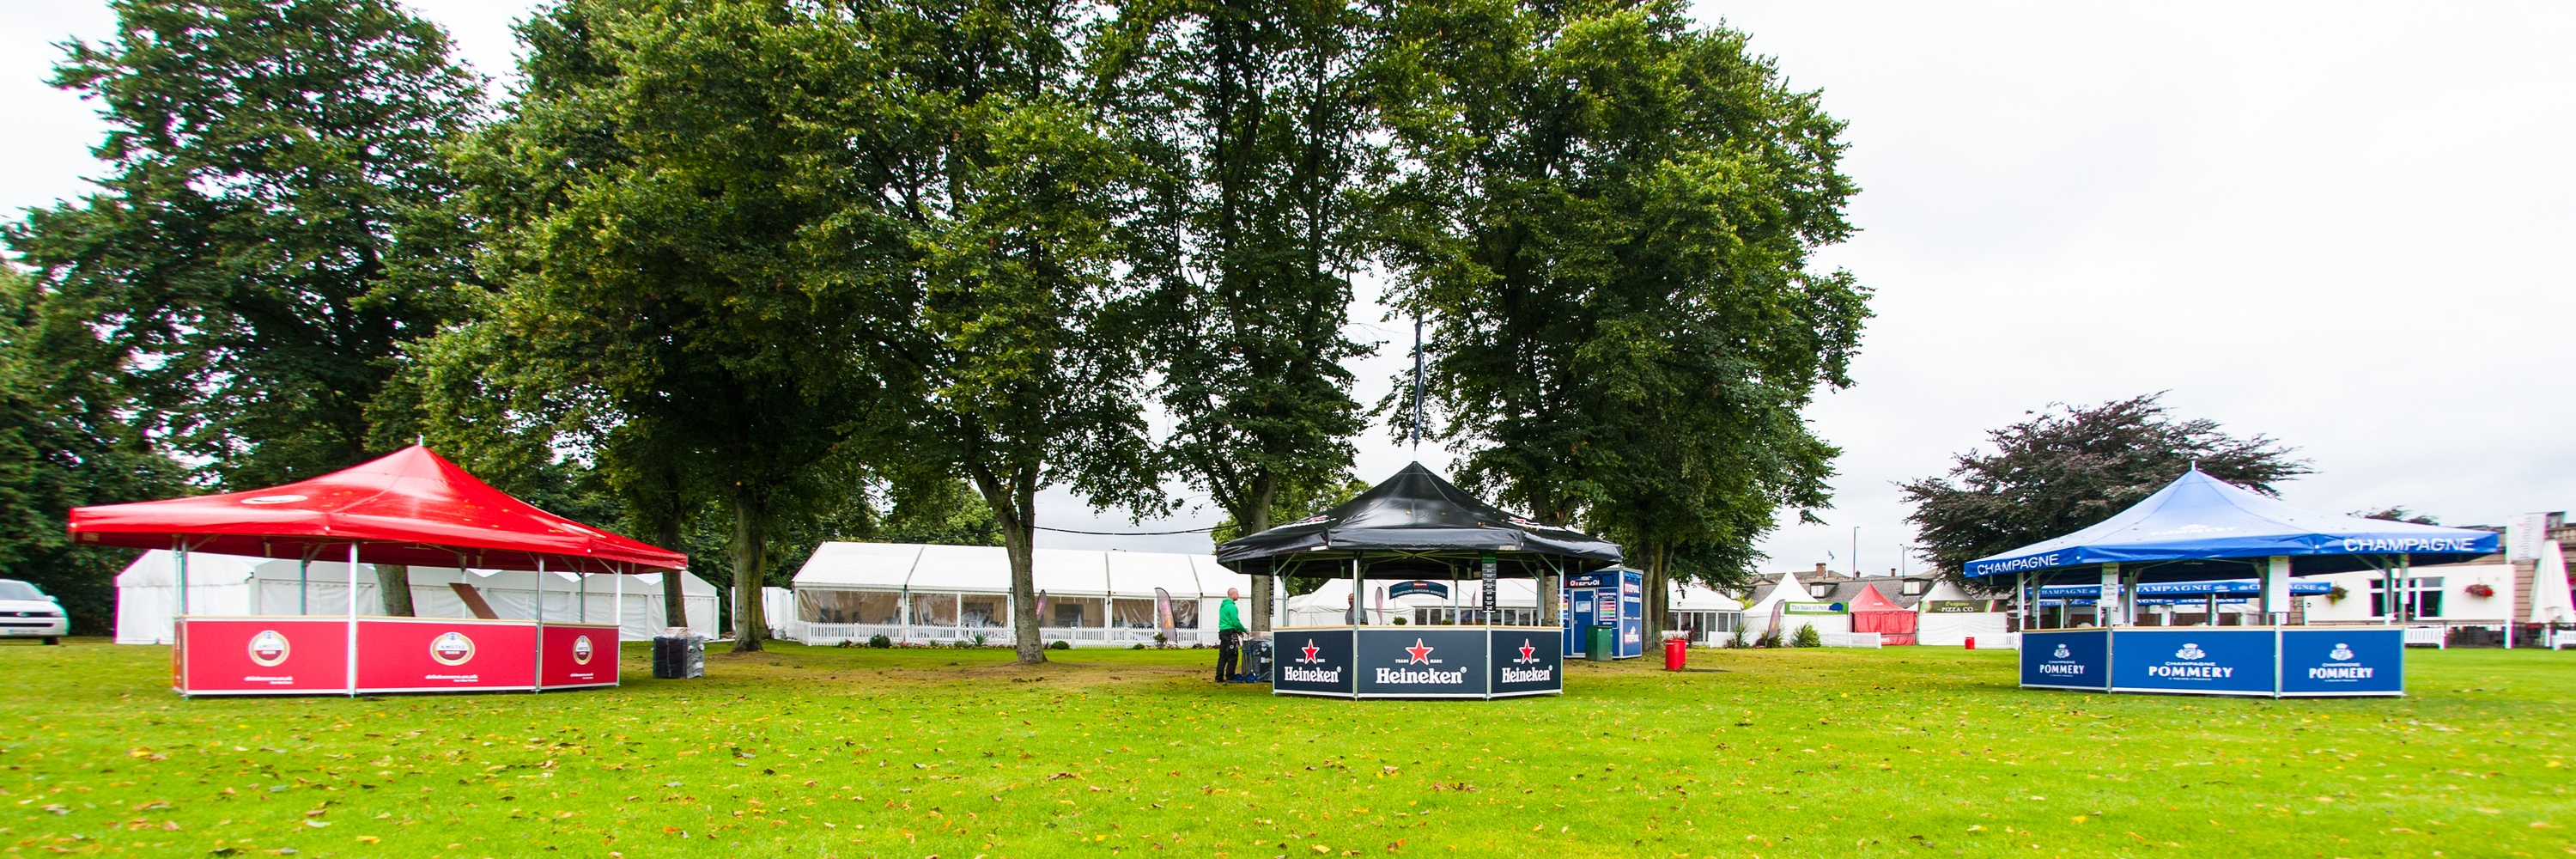 <p>Event, Mobile & Stadia Bars – Tents & Marquees – Pavilions – Octagonal Outdoor Bars</p> <p> </p> <p>Pavilion Bars – Octagonal Outdoor Event Bar and Champagne Bar – Amstel, Heineken & Pommery Bars</p> <p> </p> <p>Ideally suited for prestigious sporting events at racecourses, cricket grounds etc</p>